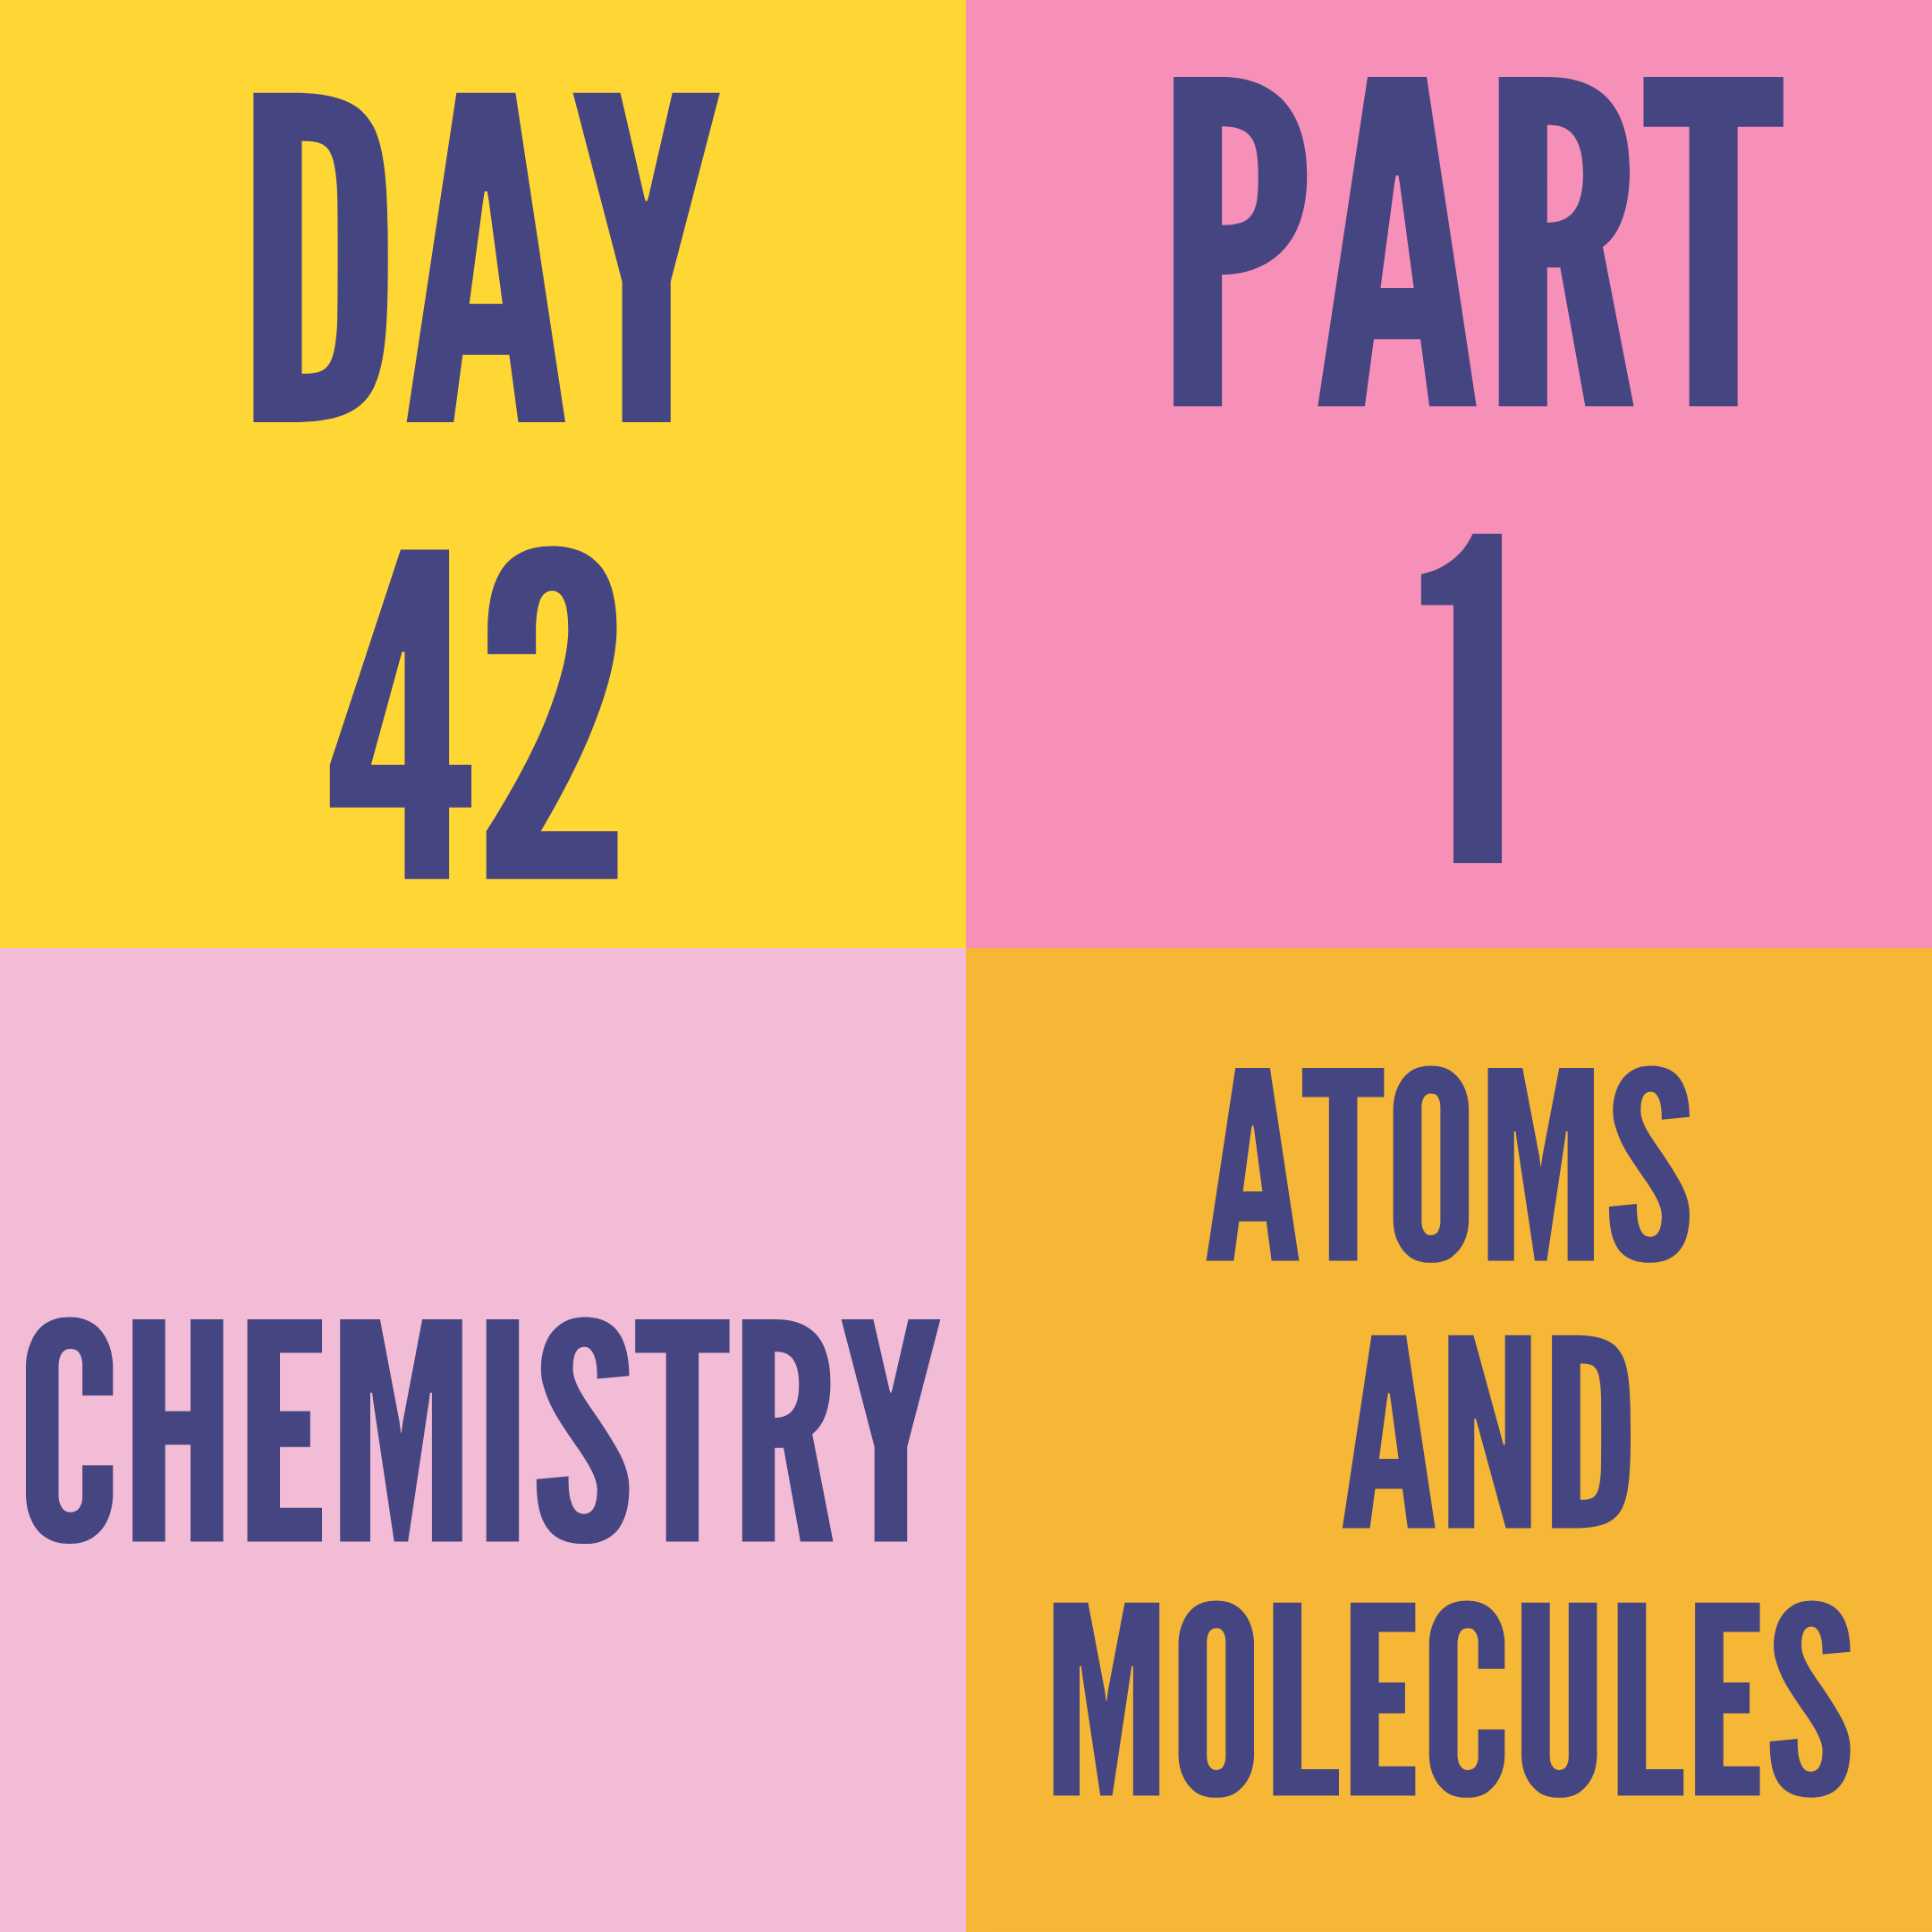 DAY-42 PART-1 ATOMS AND MOLECULES